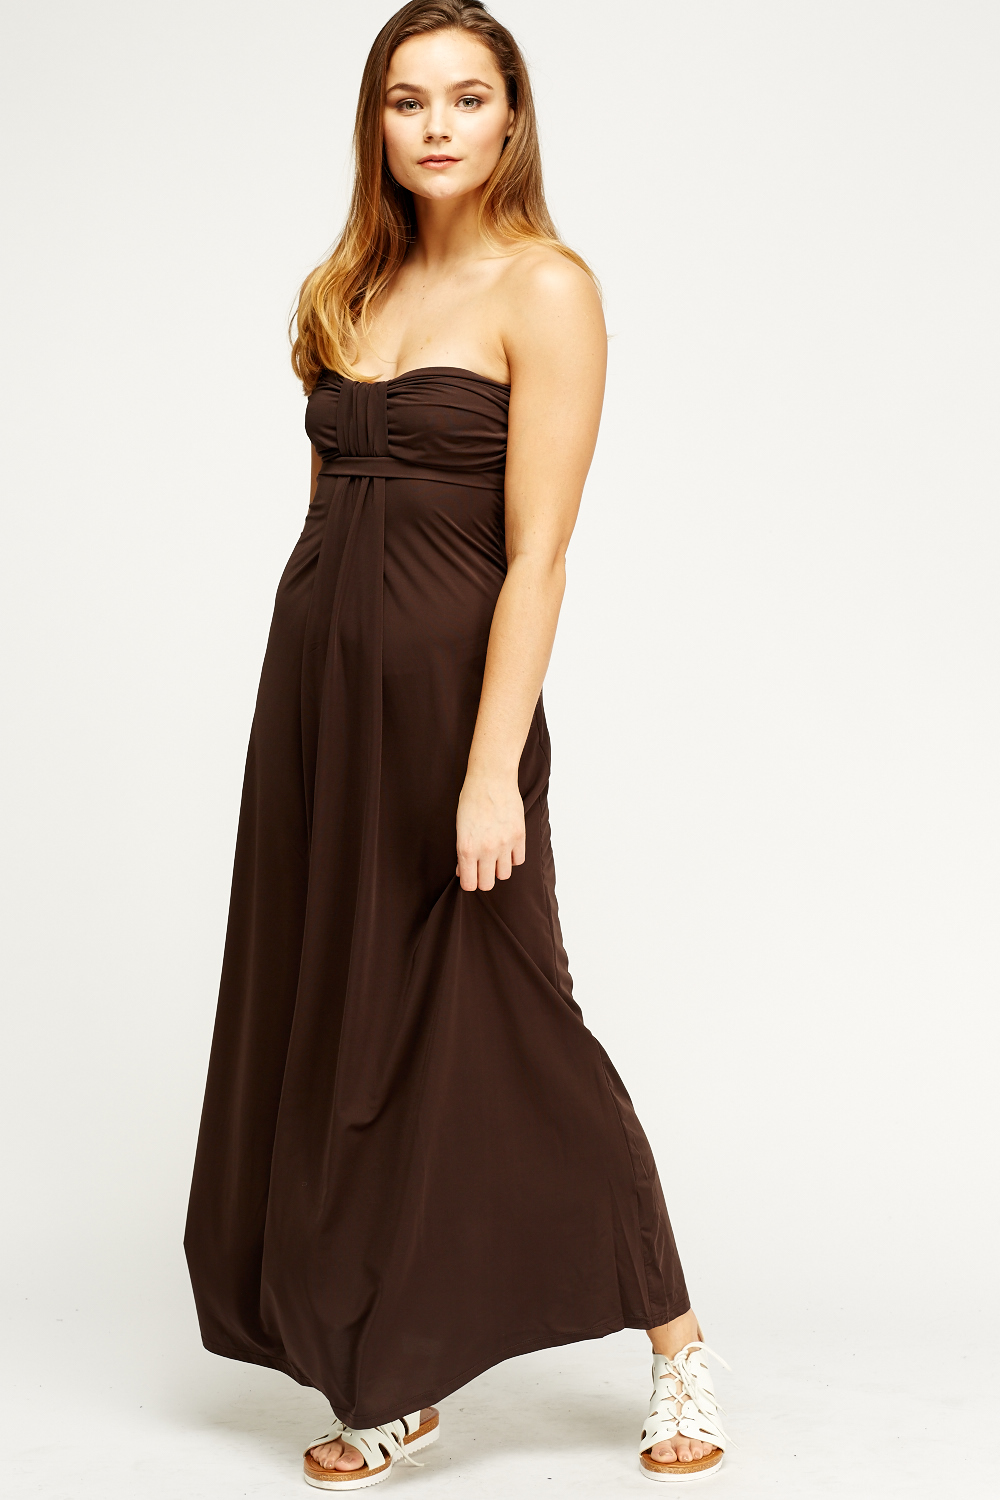 This dress is a great basic item for any ladies wardrobe. It's intended as a basic cover-over which works with almost any top. Since it provides adequate coverage at the neckline and shoulders, it's great for those pretty lacy tops that otherwise would require multiple layers to be modestly worn.